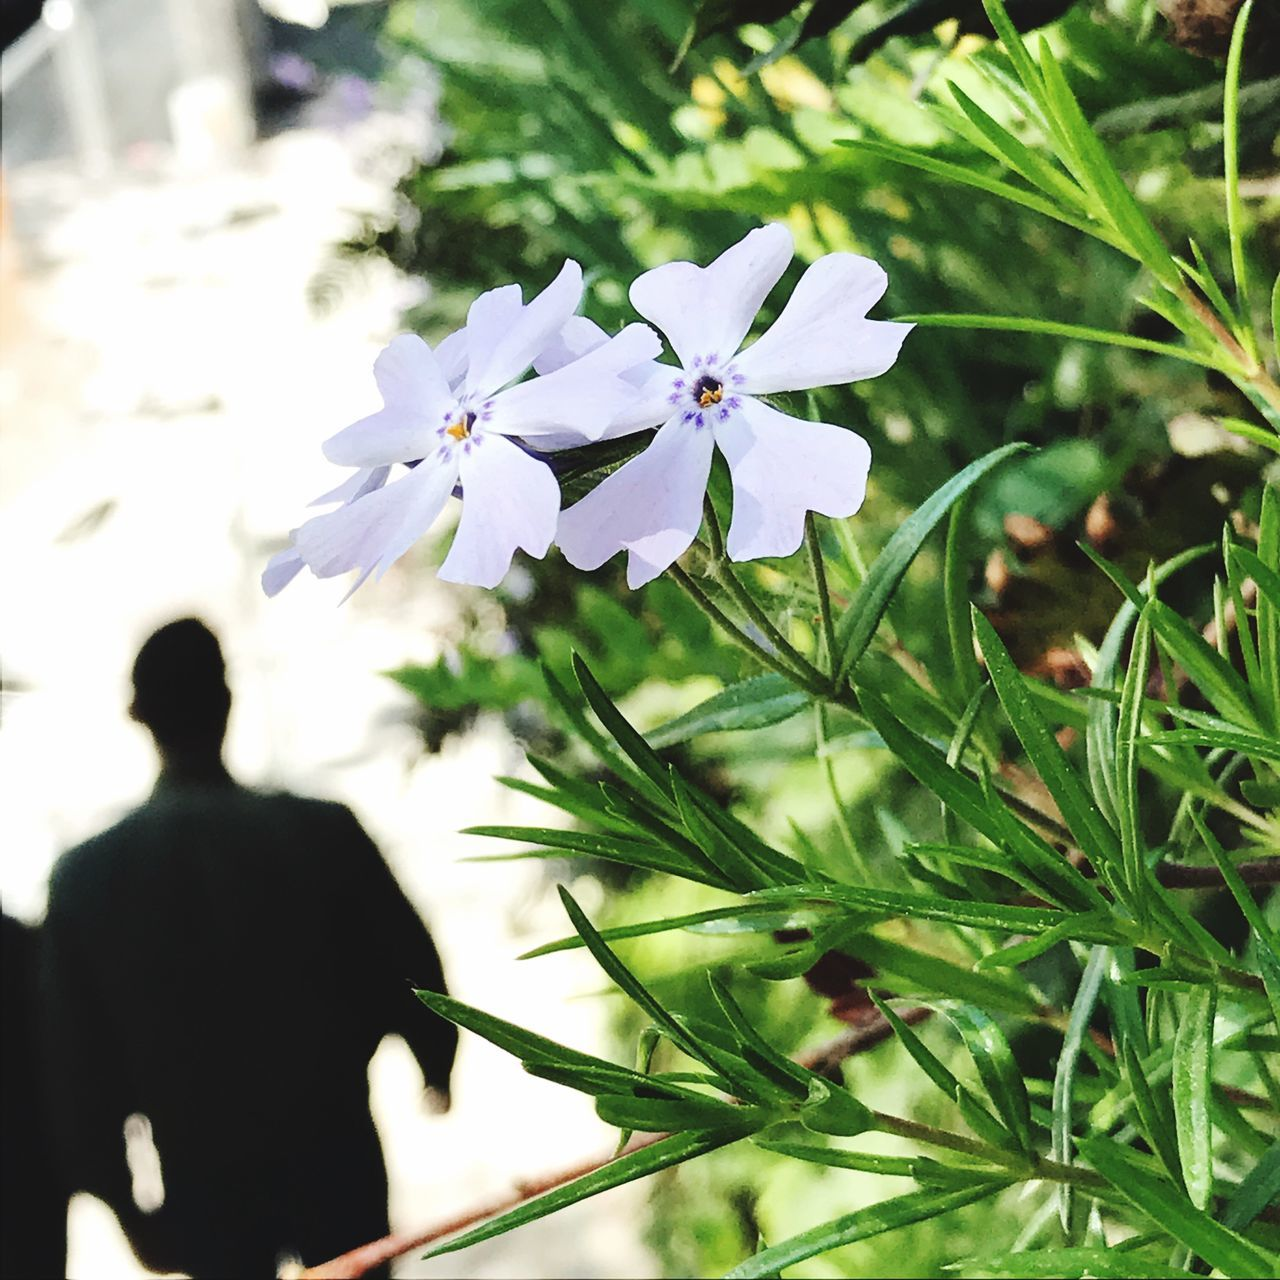 Wall gardens in Stockholm / Södermalm. Flower Nature Growth One Person Outdoors Freshness People Day Beauty In Nature Adult Flower Head Adults Only Silhouette